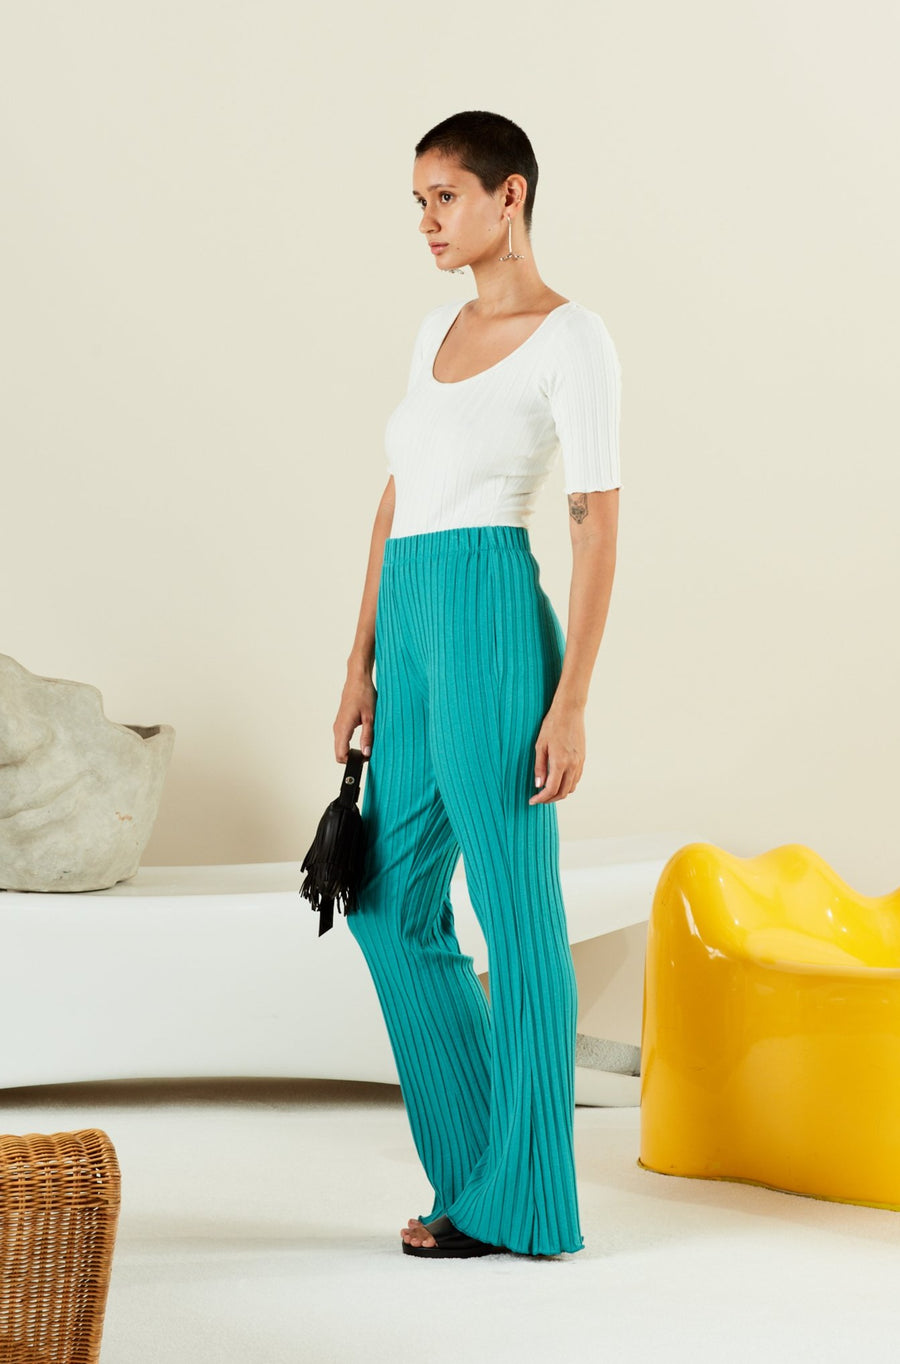 RIB CYRENE PANT IN POOL